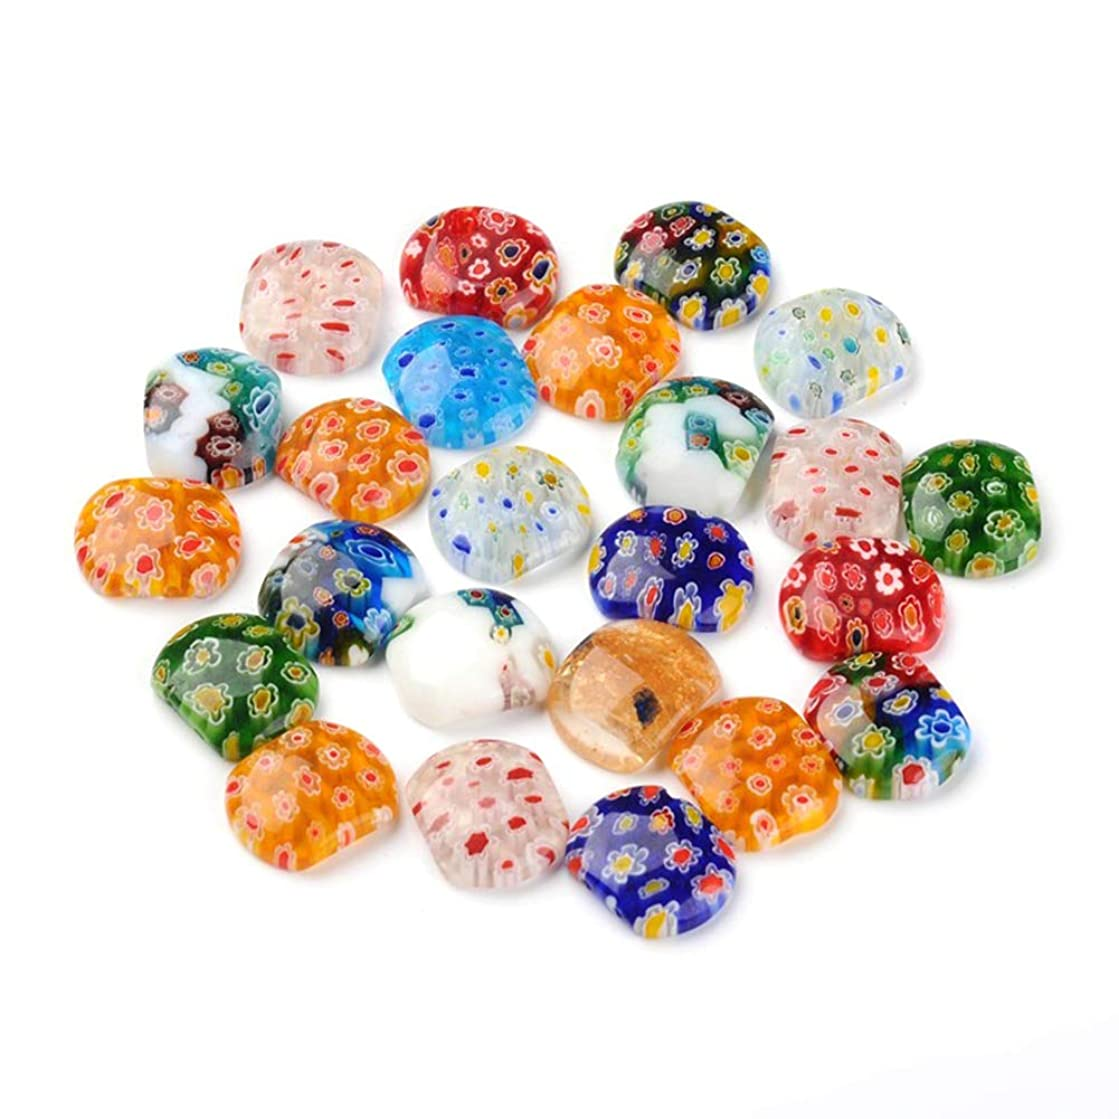 ARRICRAFT 100g Rectangle Handmade Millefiori Glass Multi-Strand Links Mixed Color Flower Beads for Bacelets, About 28pcs/100g